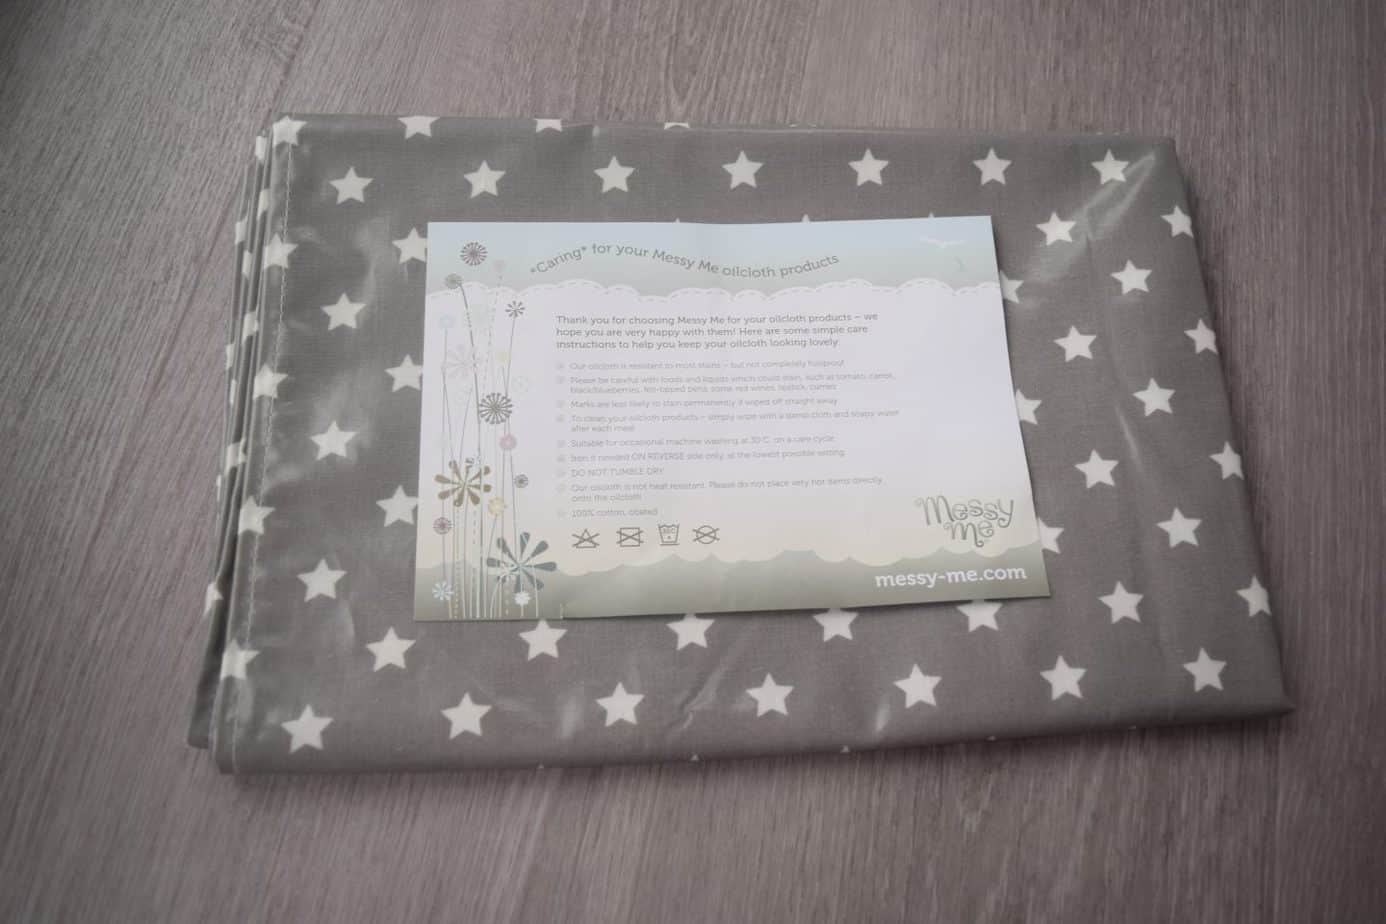 messy me splash mat in grey with starts folded up ready to use